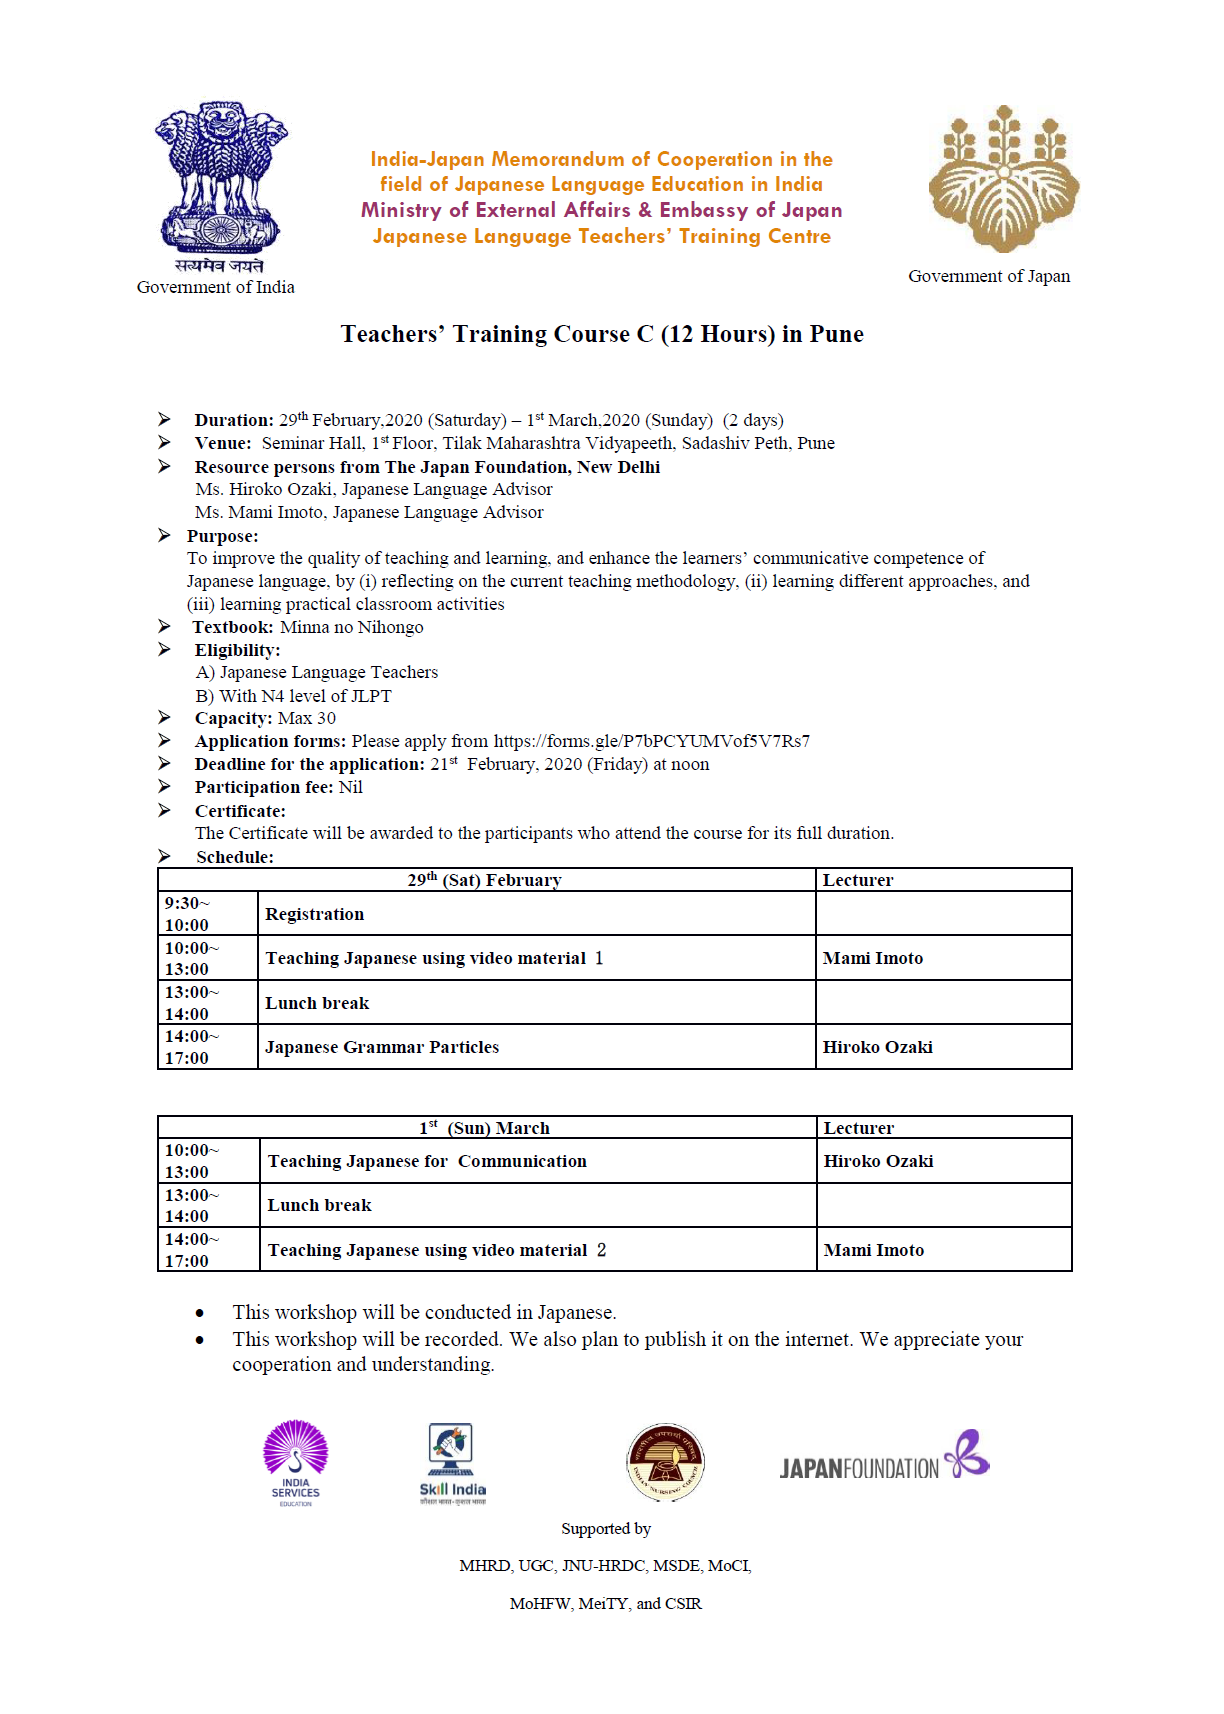 Teachers' Training Course C (12 Hours) in Pune